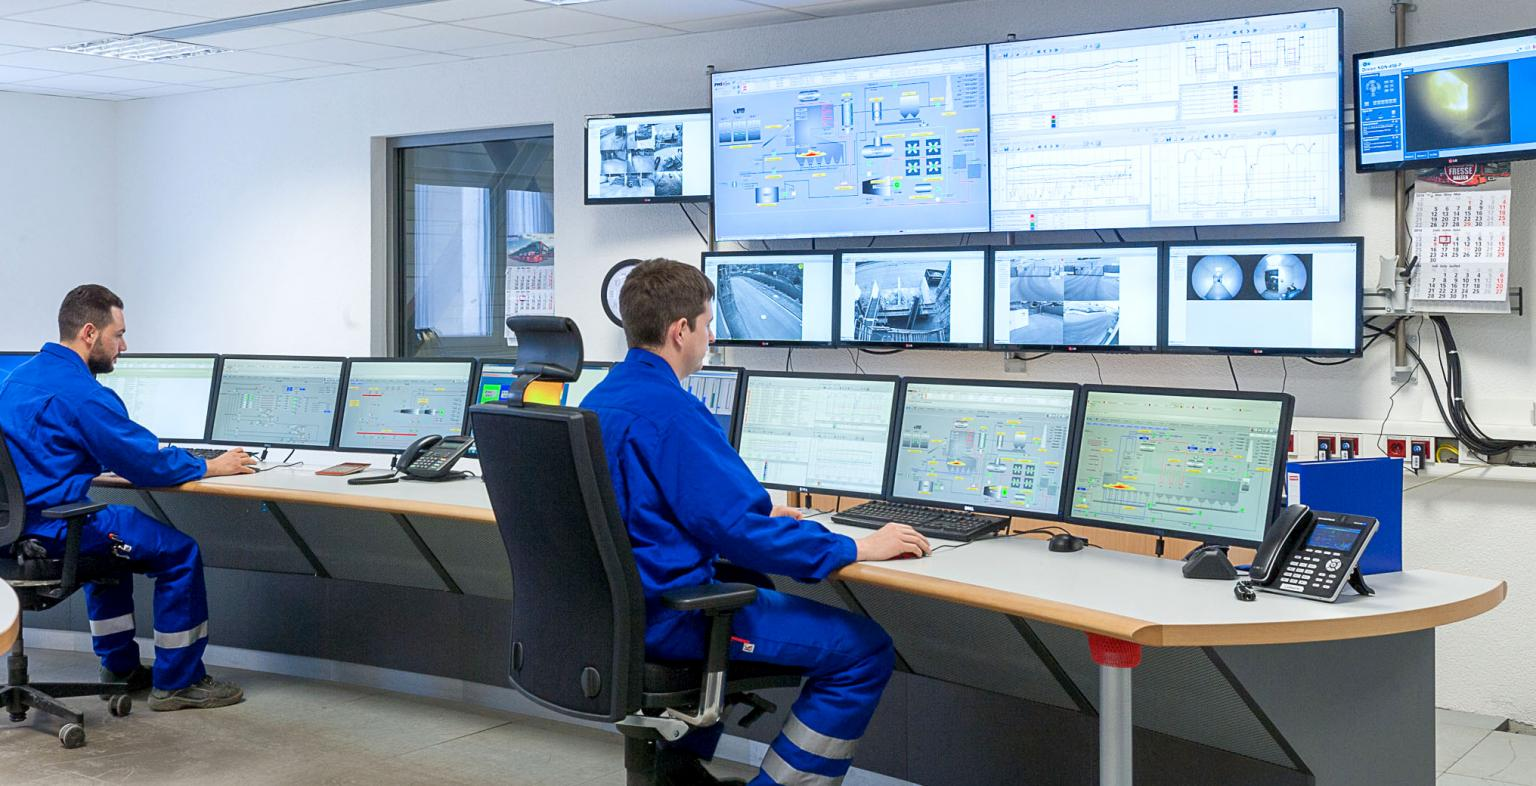 All information for operating and monitoring the entire process is collected in the central control room. Source: ESWE BioEnergie GmbH